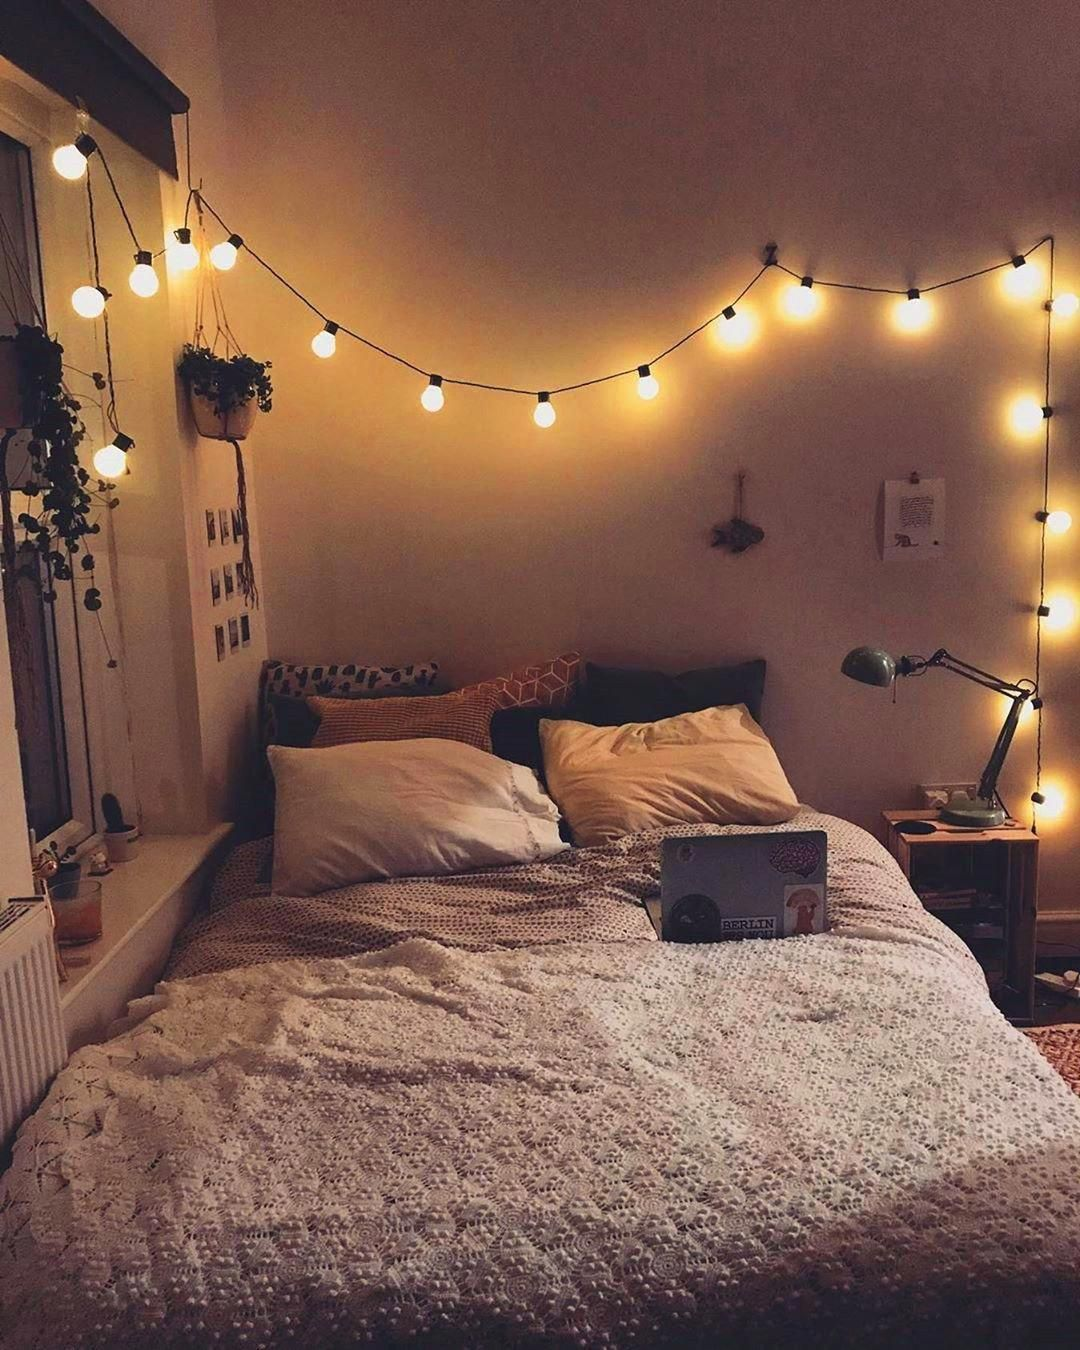 Fantastic Boho Bedroom Are Offered On Our Site Read More And You Will Not Be Sorry You Did Bohobedroom Aesthetic Bedroom Cozy Room Decor Relaxing Bedroom